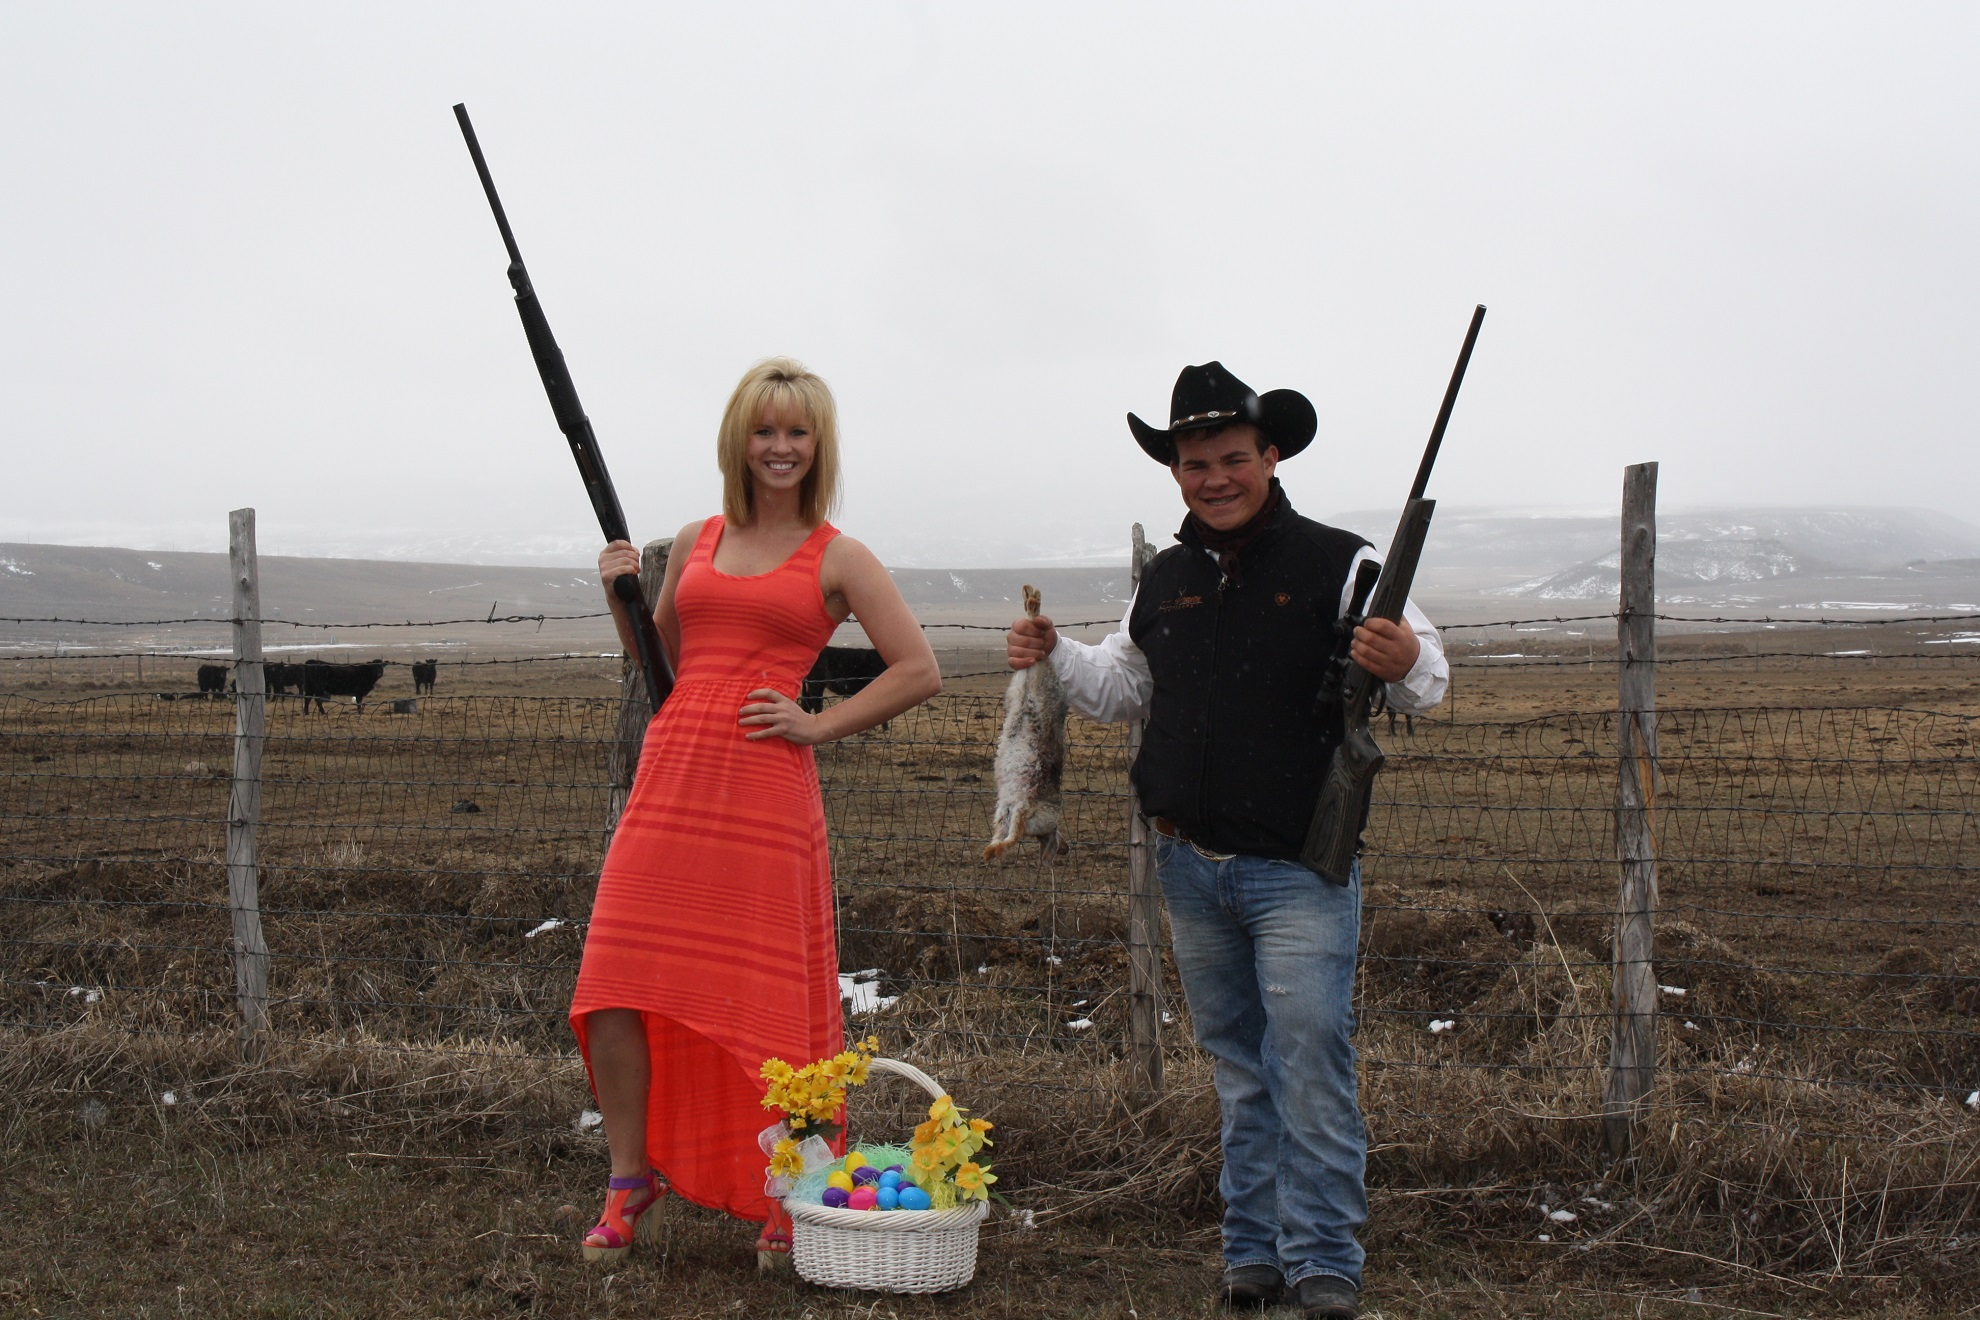 This is how we do Easter in Meeker!